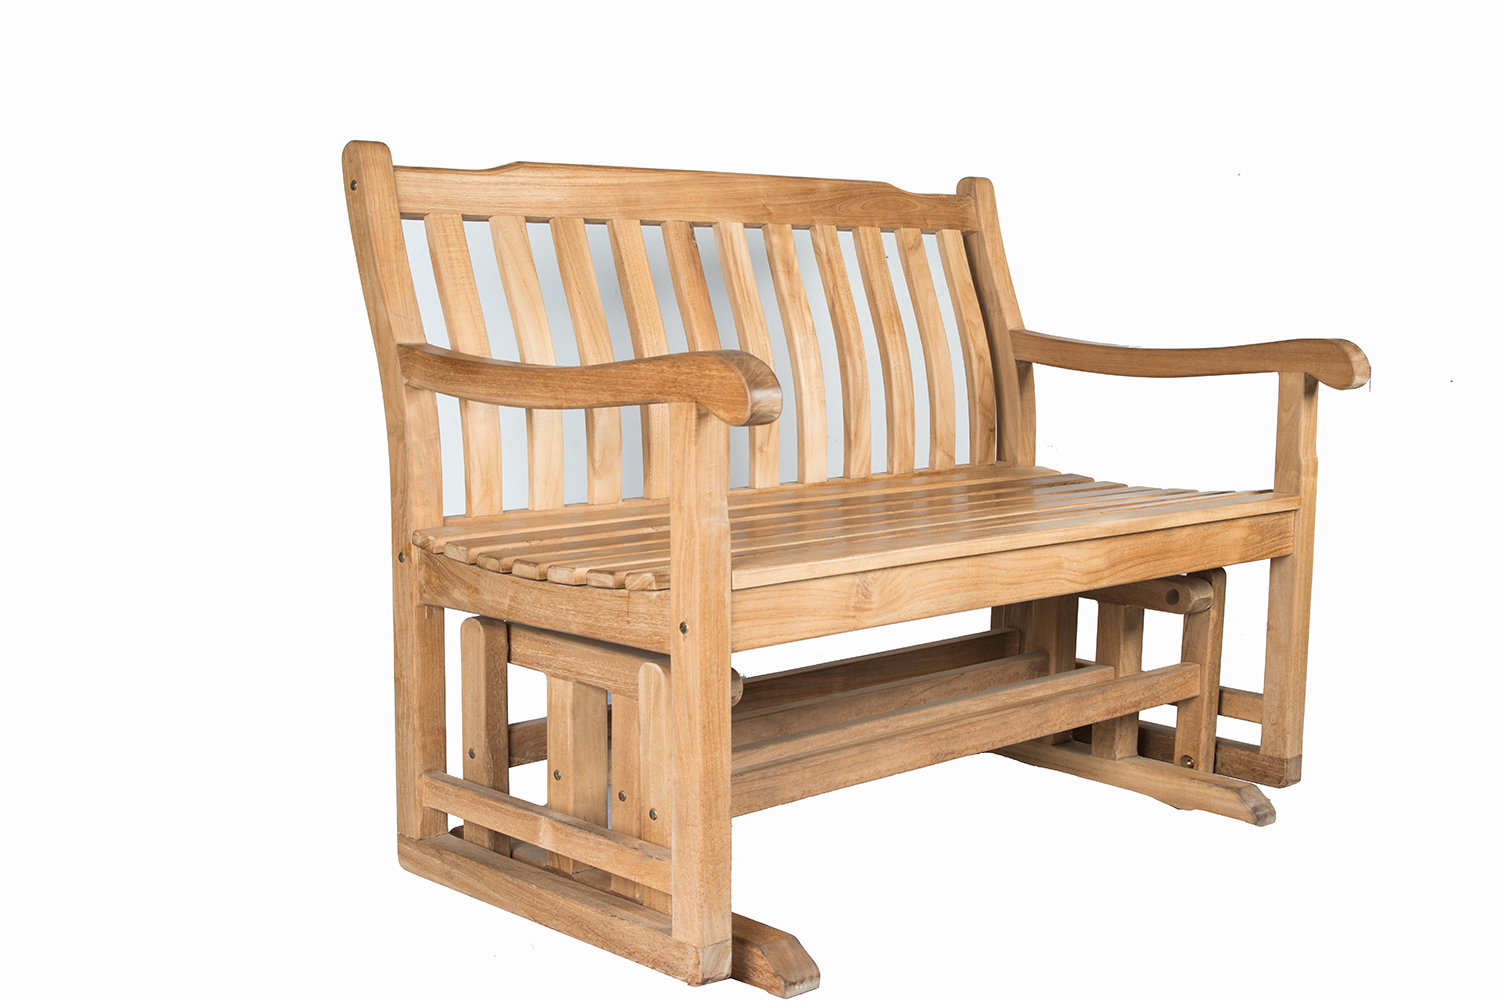 Teak Glider Benches For Well Known Shop For Dewata Classic Teak Wood B+ Class Glider Bench (View 15 of 30)